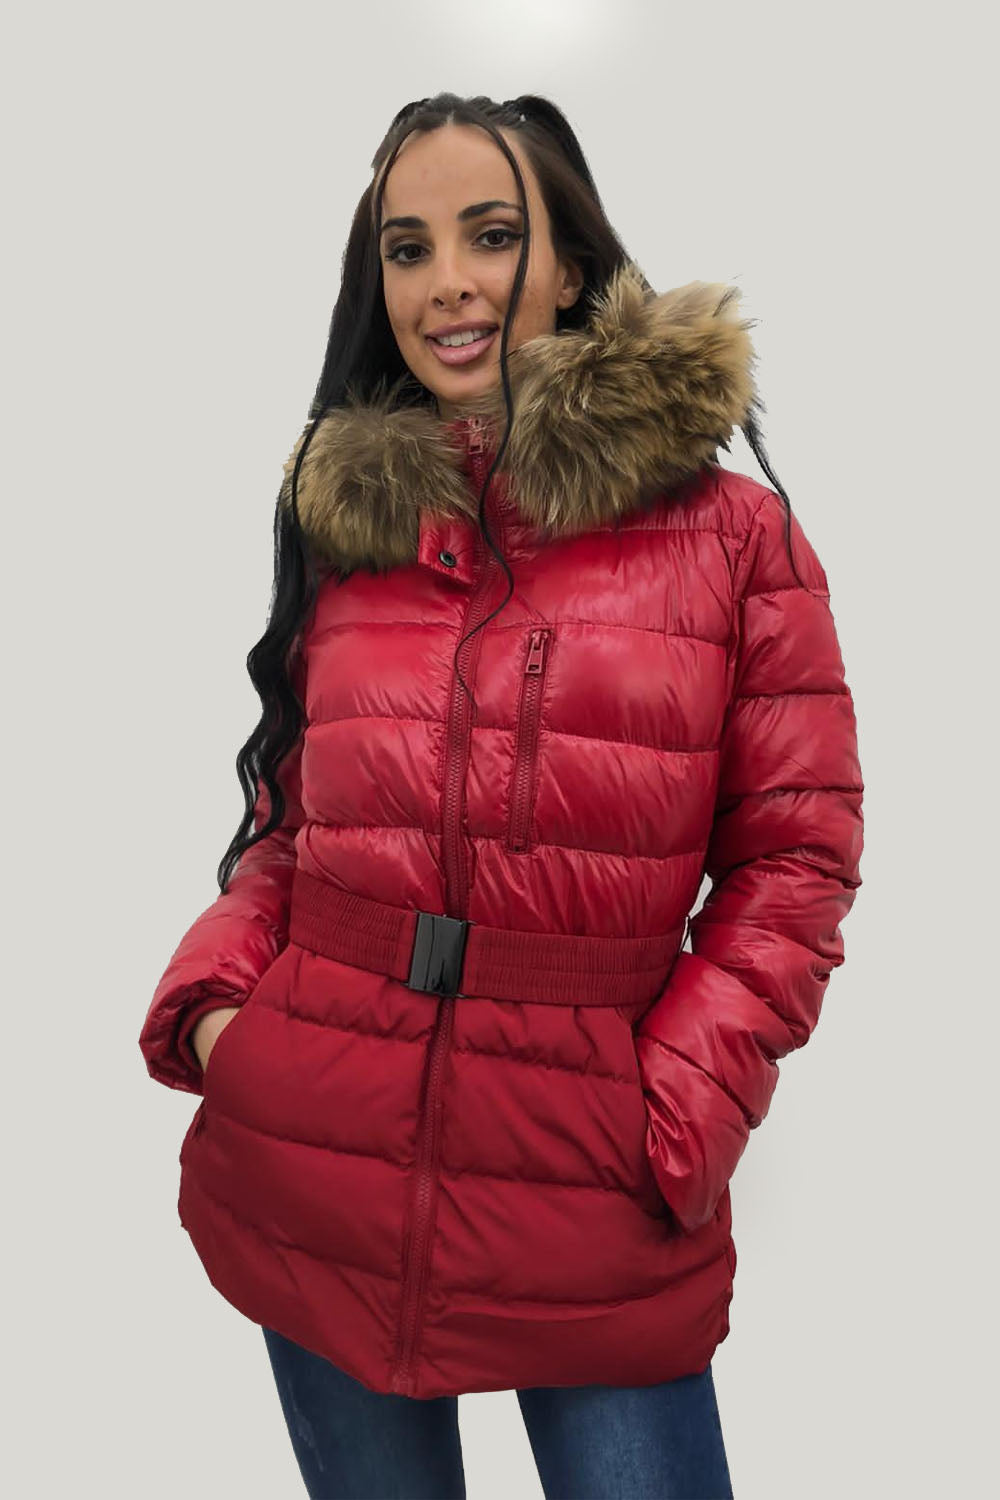 Red Natural Fur Two Tone Parka Jacket - Kailey